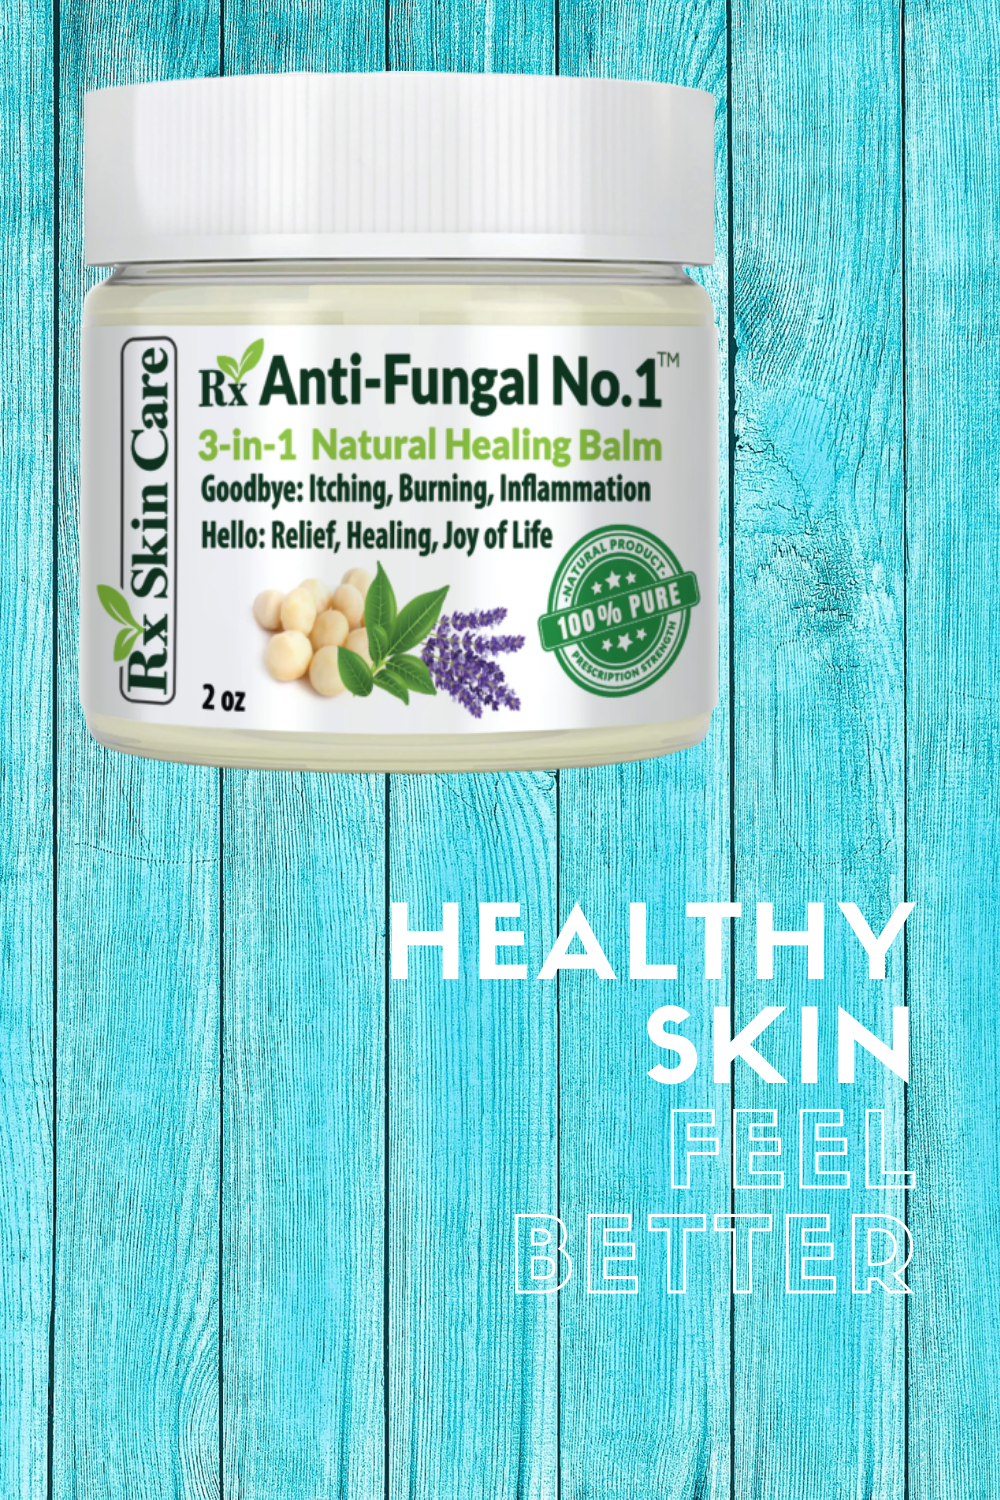 Natural Antifungal Cream For The Whole Body Get Rid Of Skin Fungus In Less Than Week In 2020 Natural Antifungal Antifungal Antifungal Cream